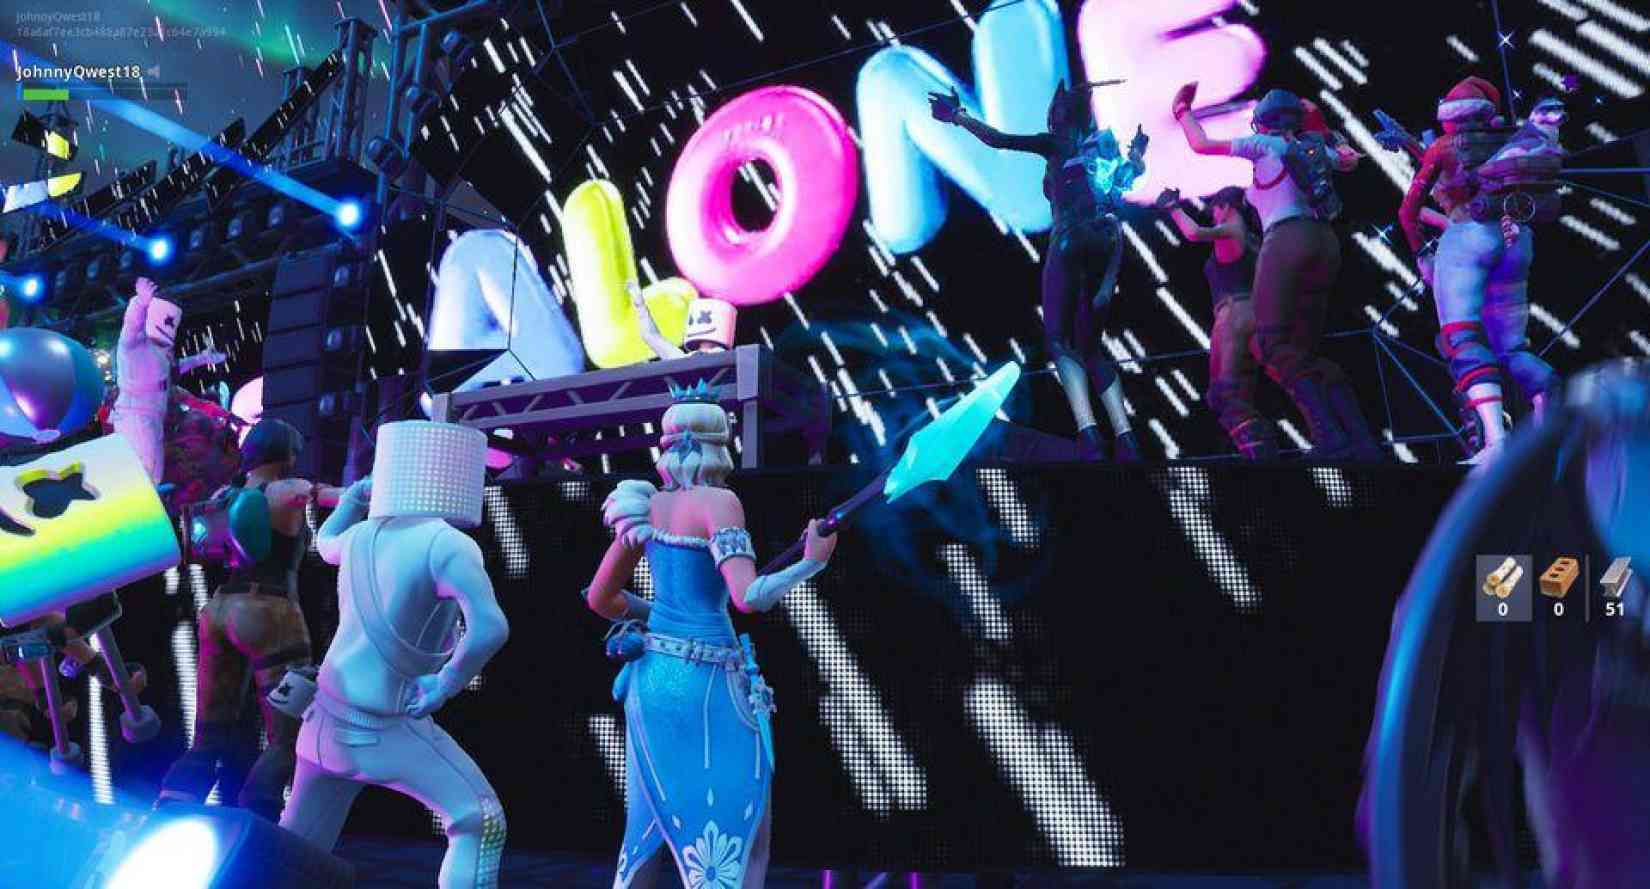 https-_blogs-images.forbes.com_insertcoin_files_2019_02_fortnite-show5.jpg#asset:8752:featured